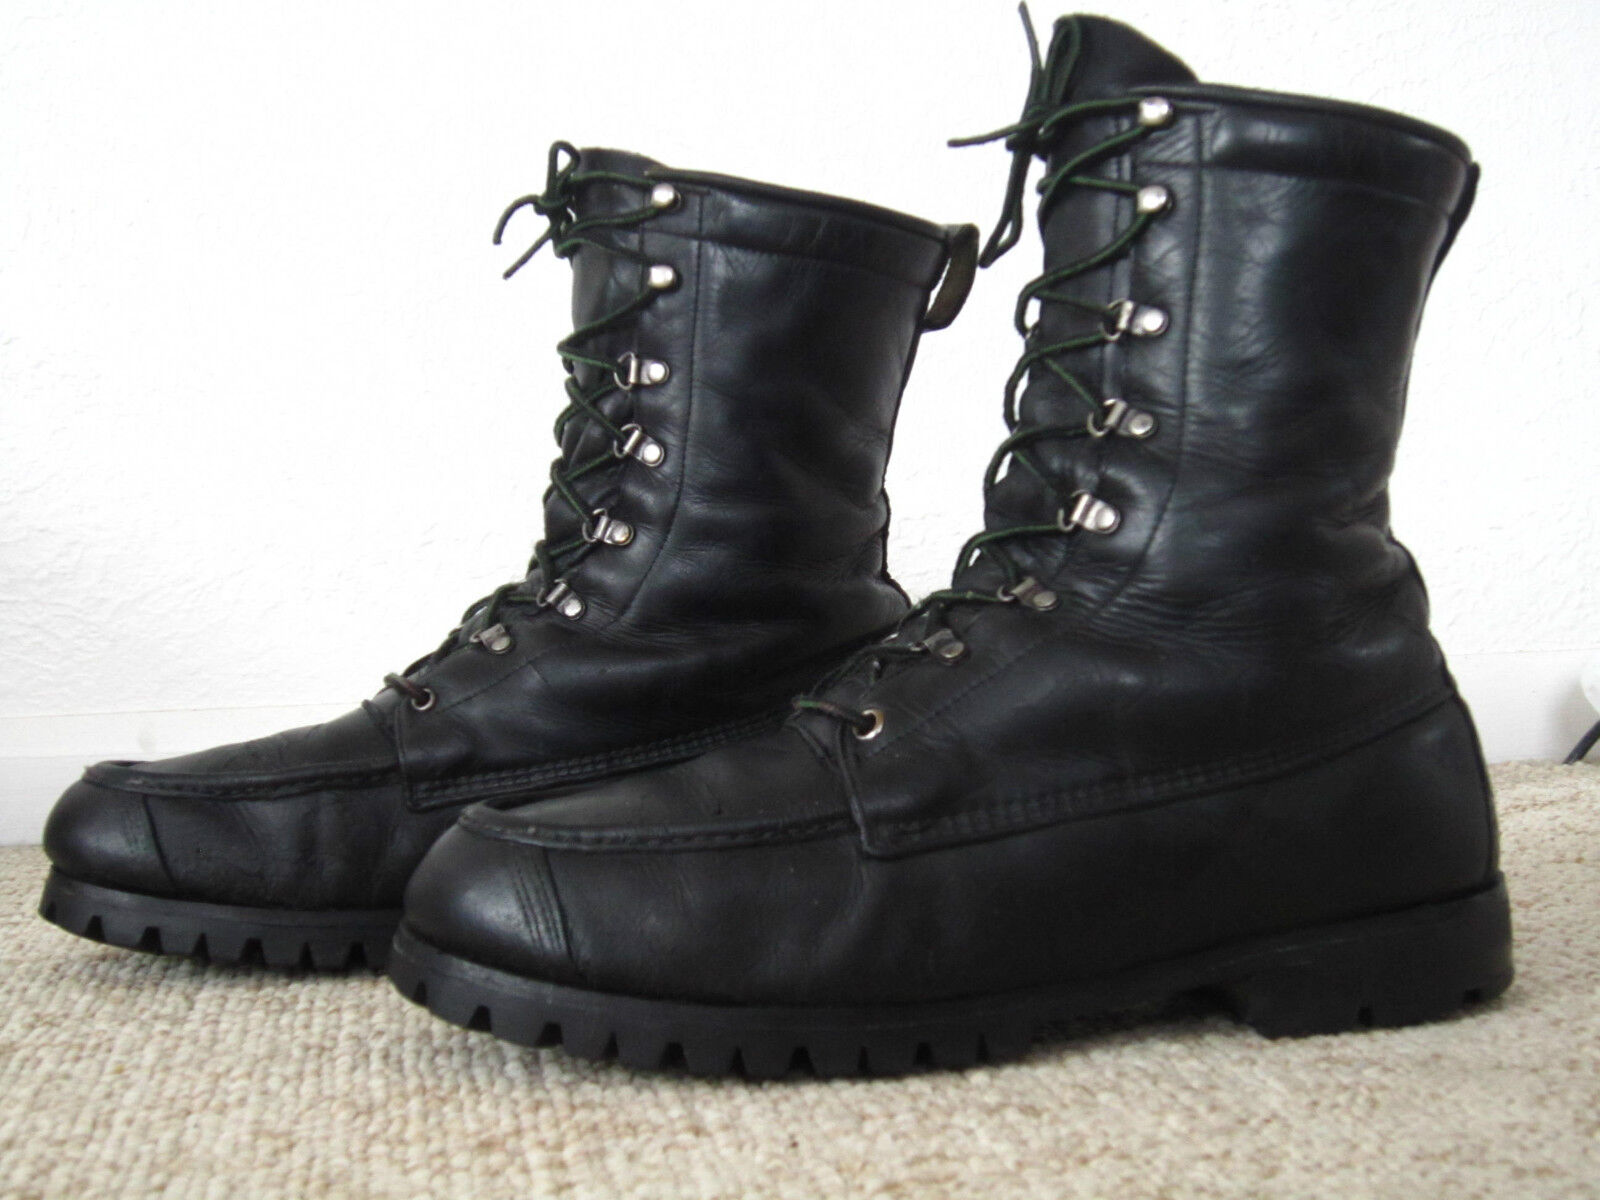 Vintage 1960's-70's TED  WILLIAMS Hunting Sports Boots - Excellent   sz men's 9.5  hottest new styles